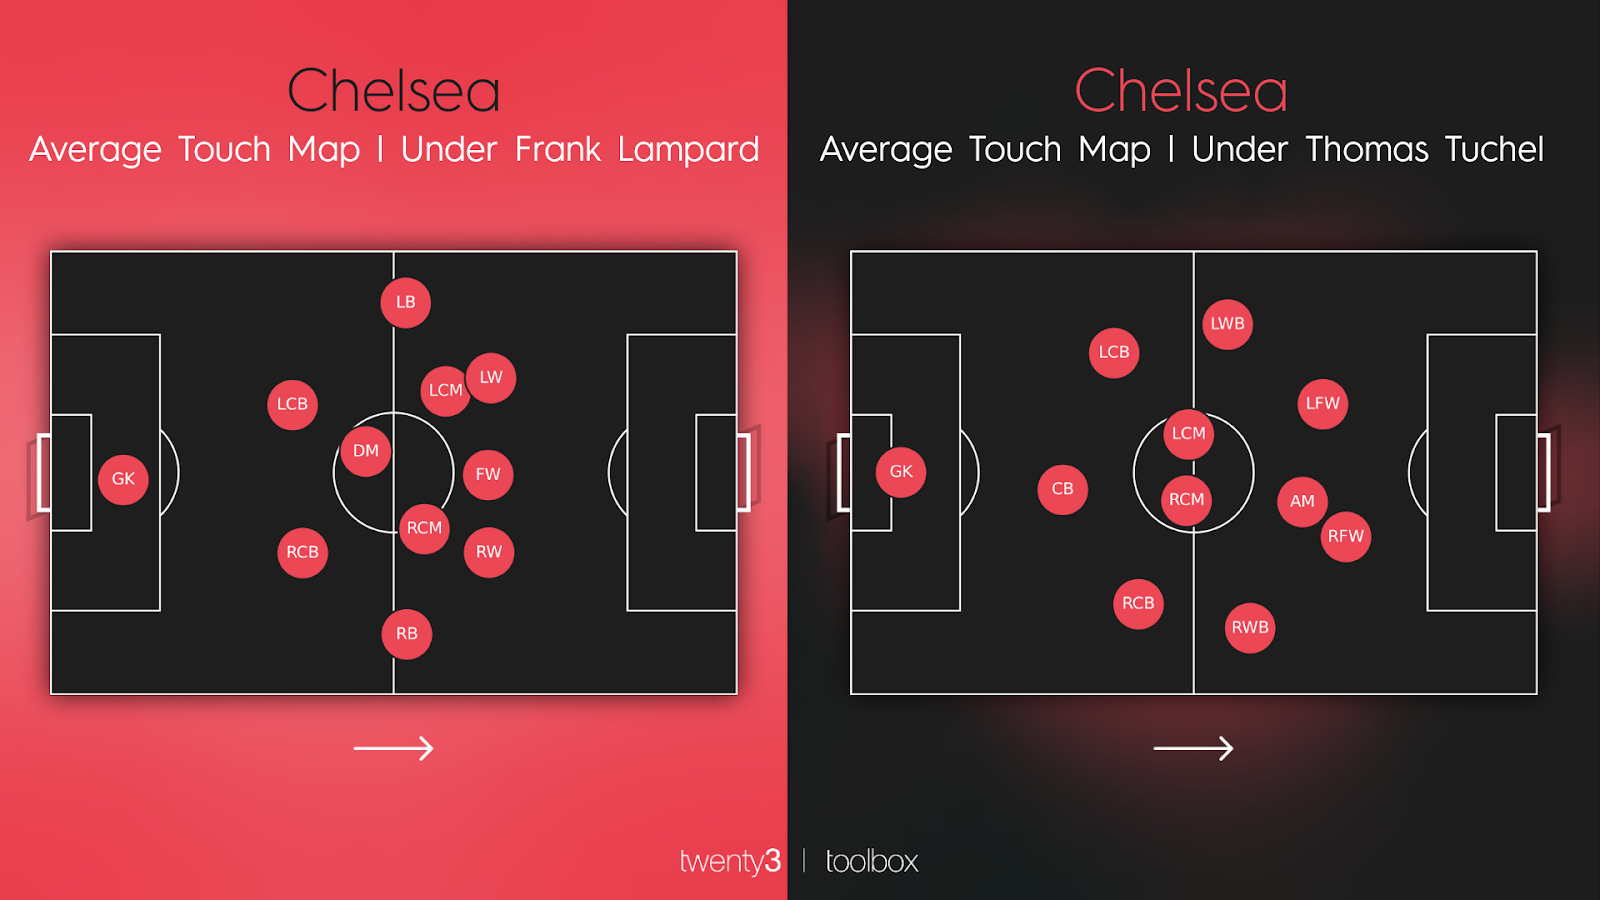 Chelsea's average touch map under Frank Lampard and Thomas Tuchel.